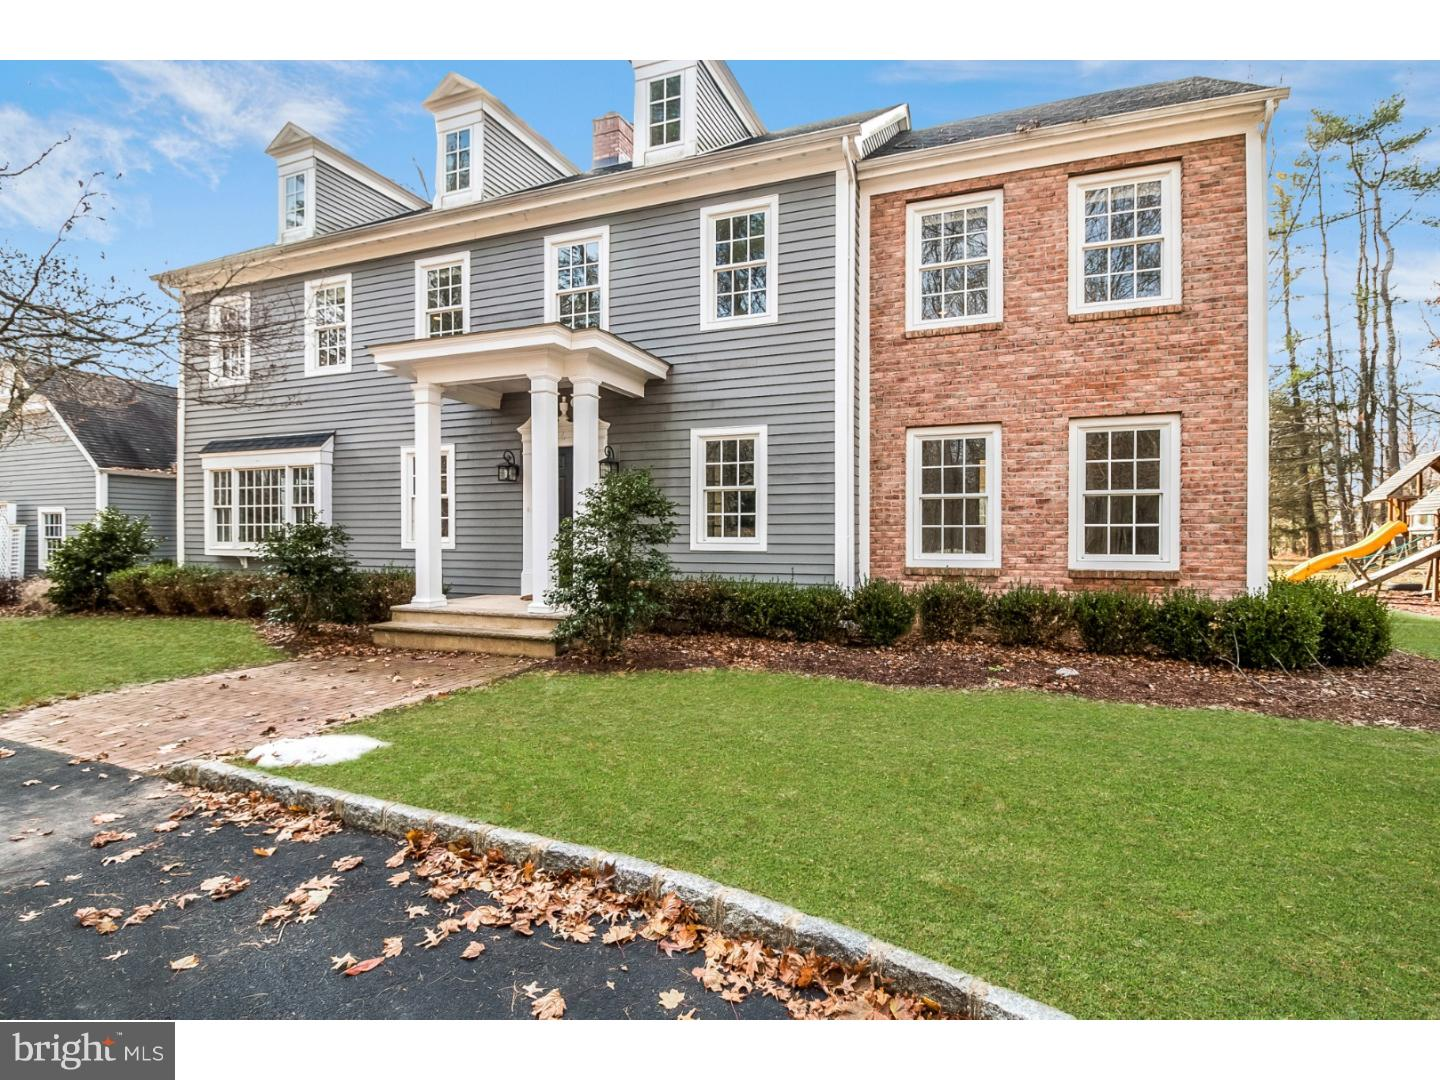 Single Family Home for Sale at 146 MINE BROOK Road Basking Ridge, New Jersey 07920 United States